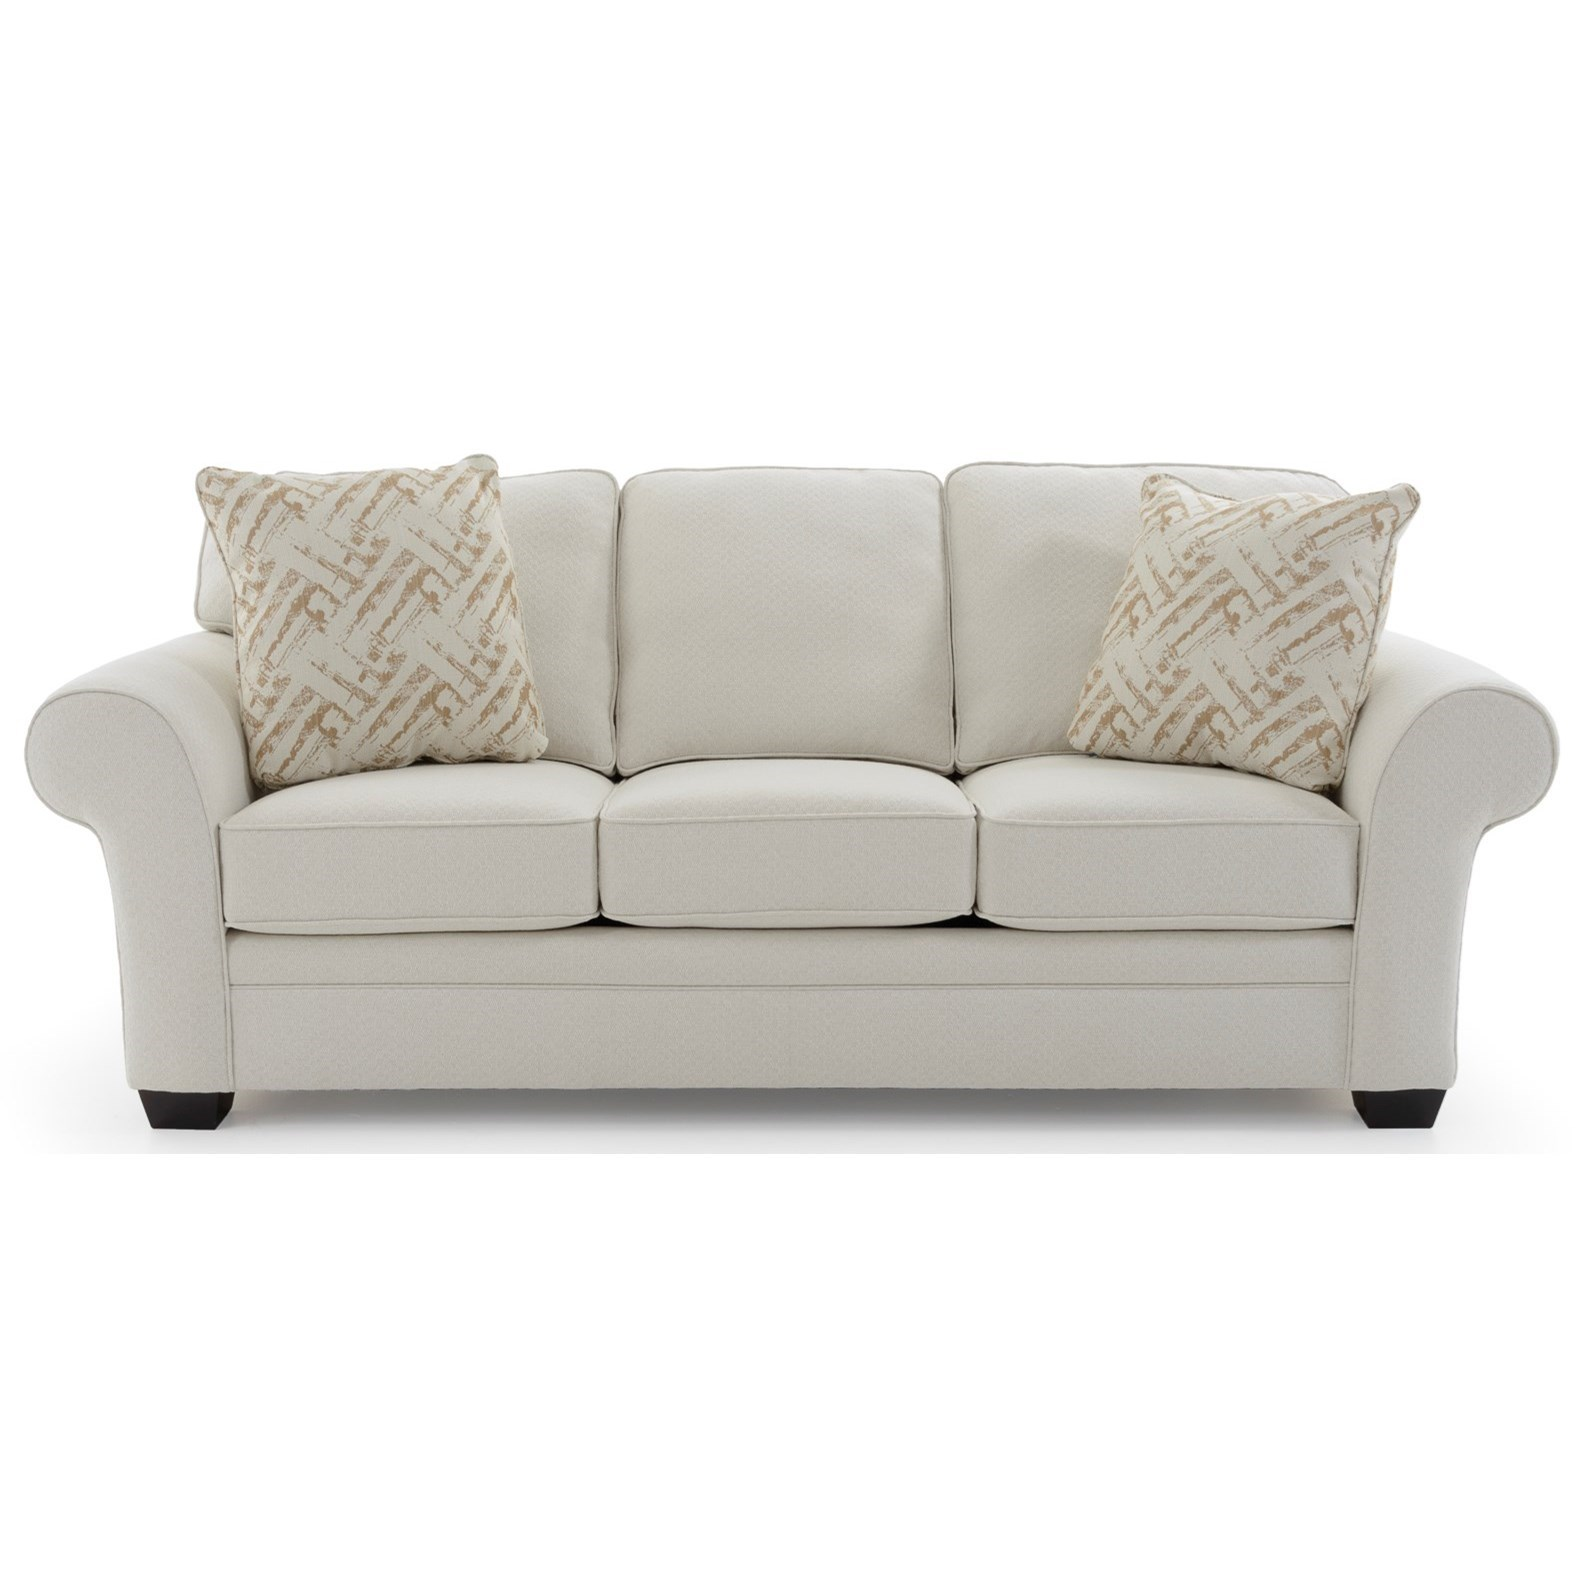 Broyhill sofa harrison sofa by broyhill home gallery s for Broyhill furniture